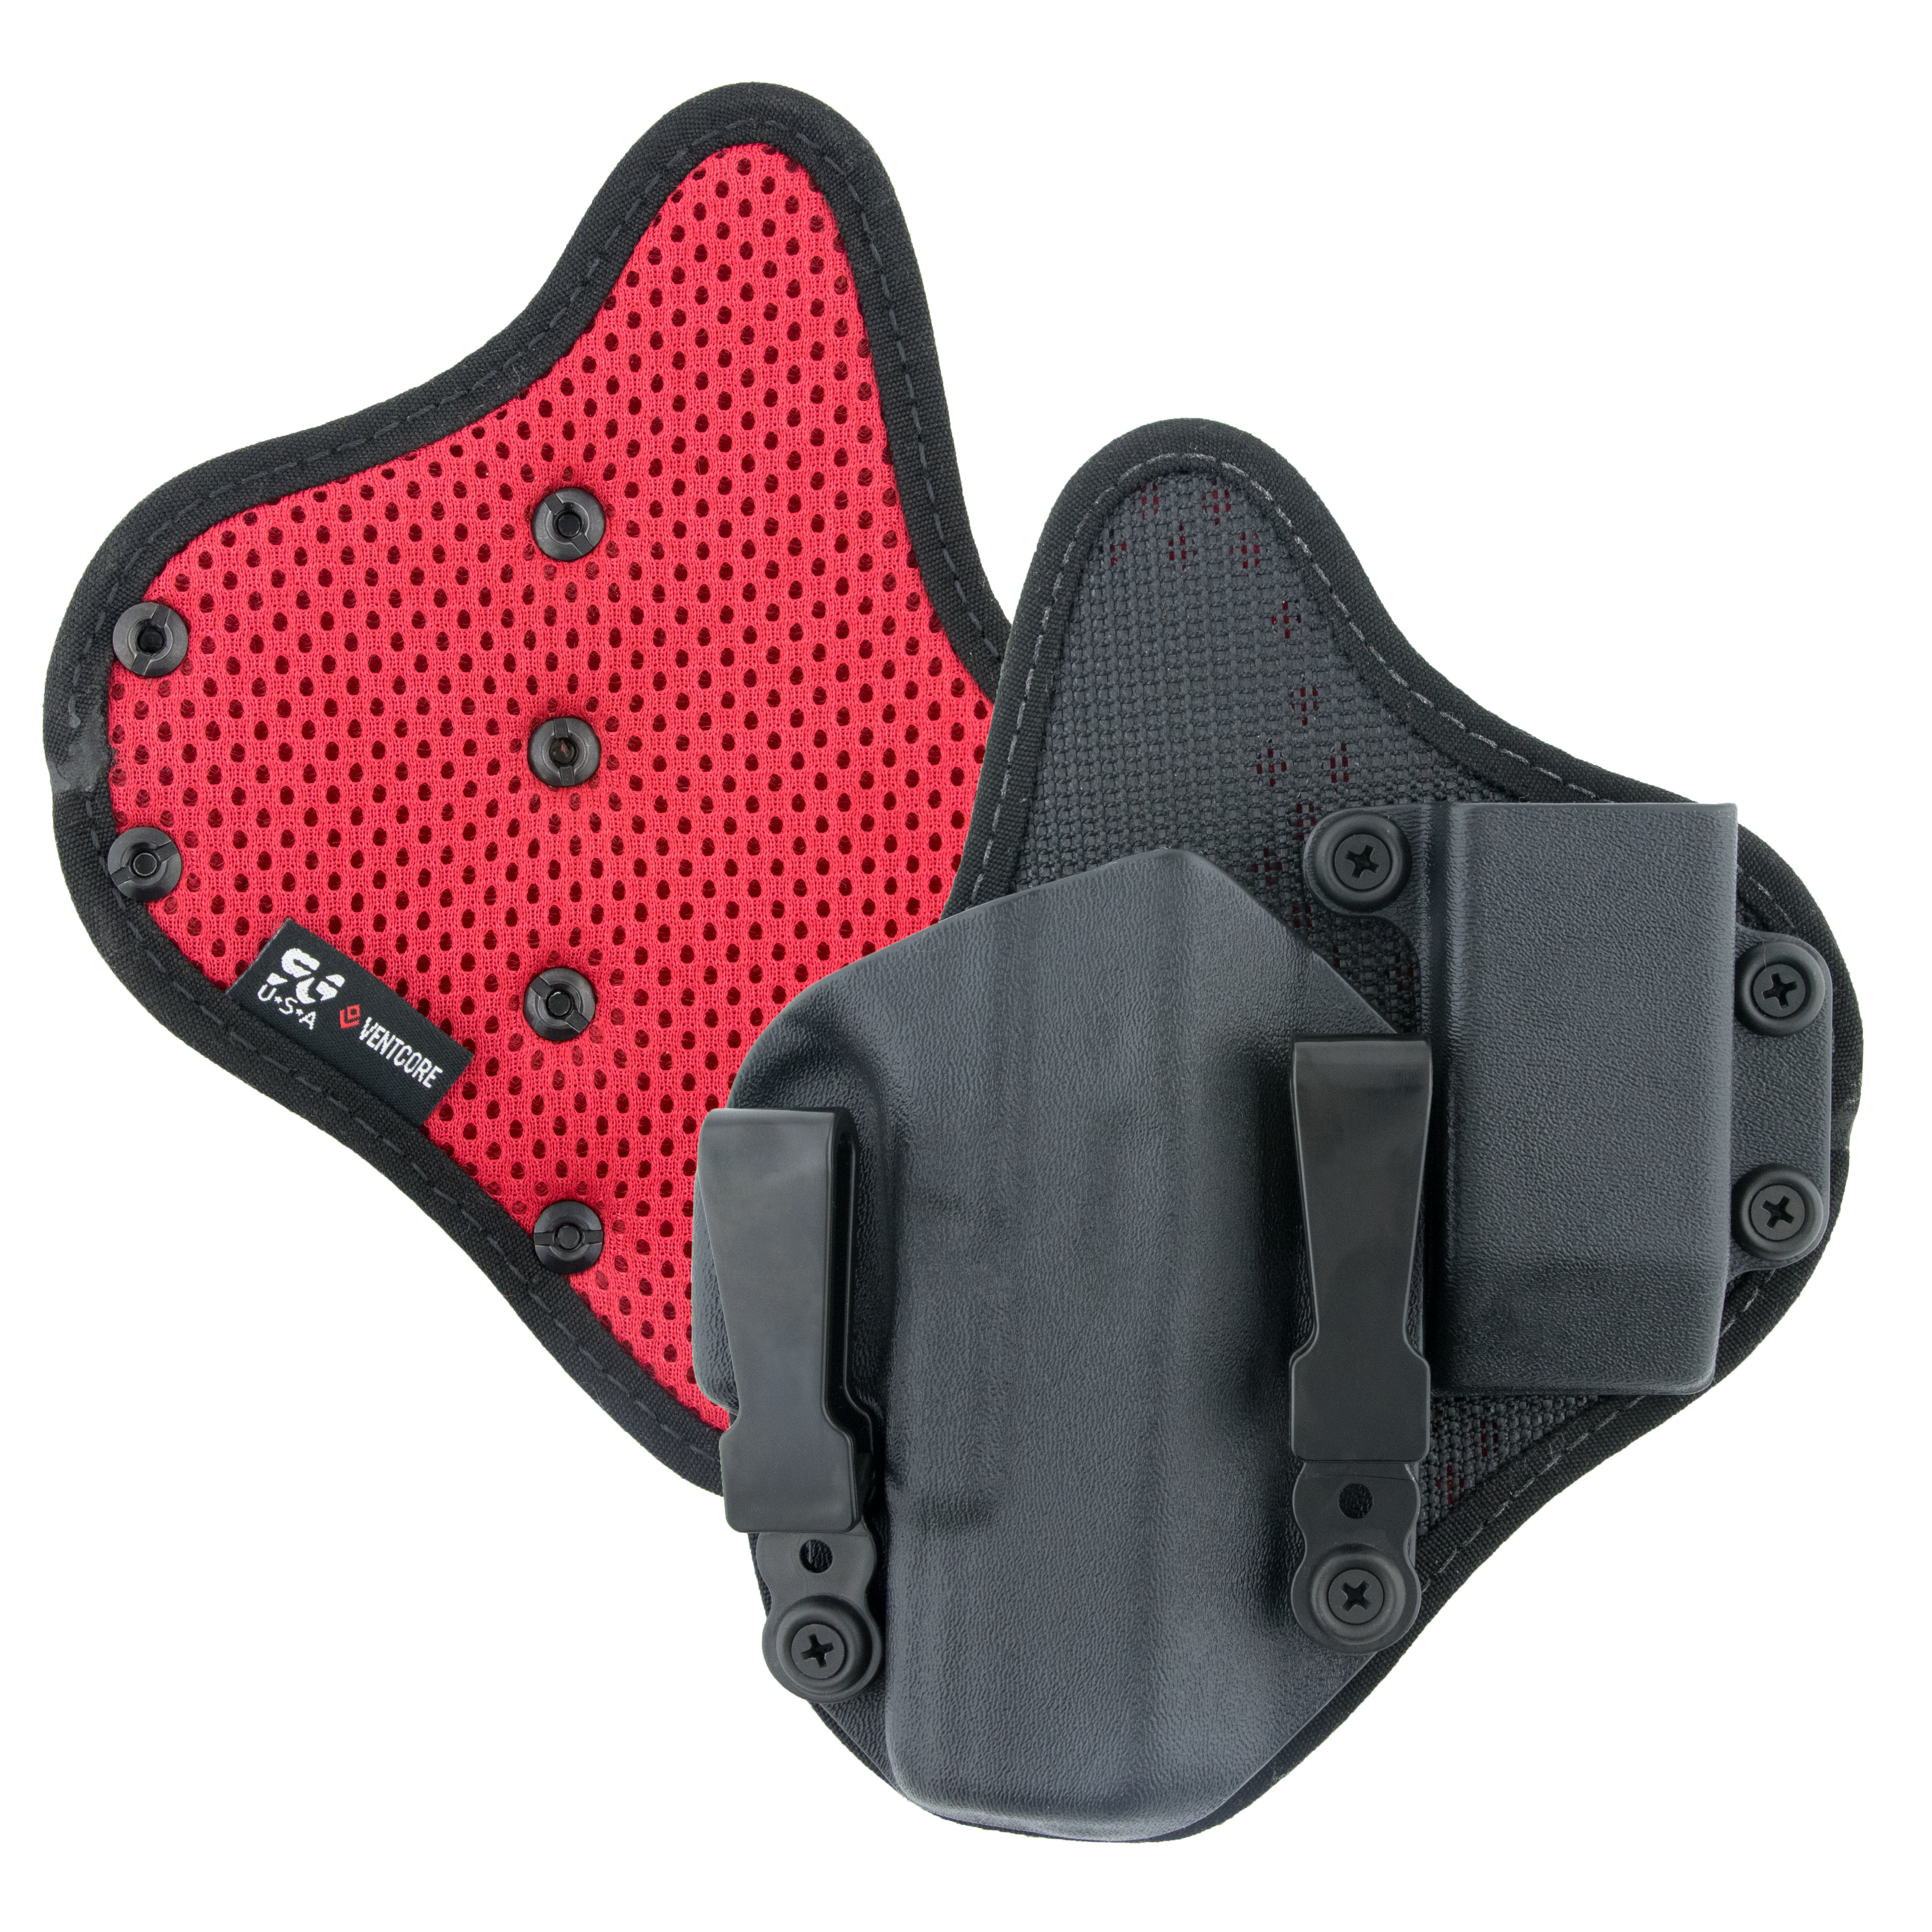 stealthgearusa-product-image-vc-aiwb-.png